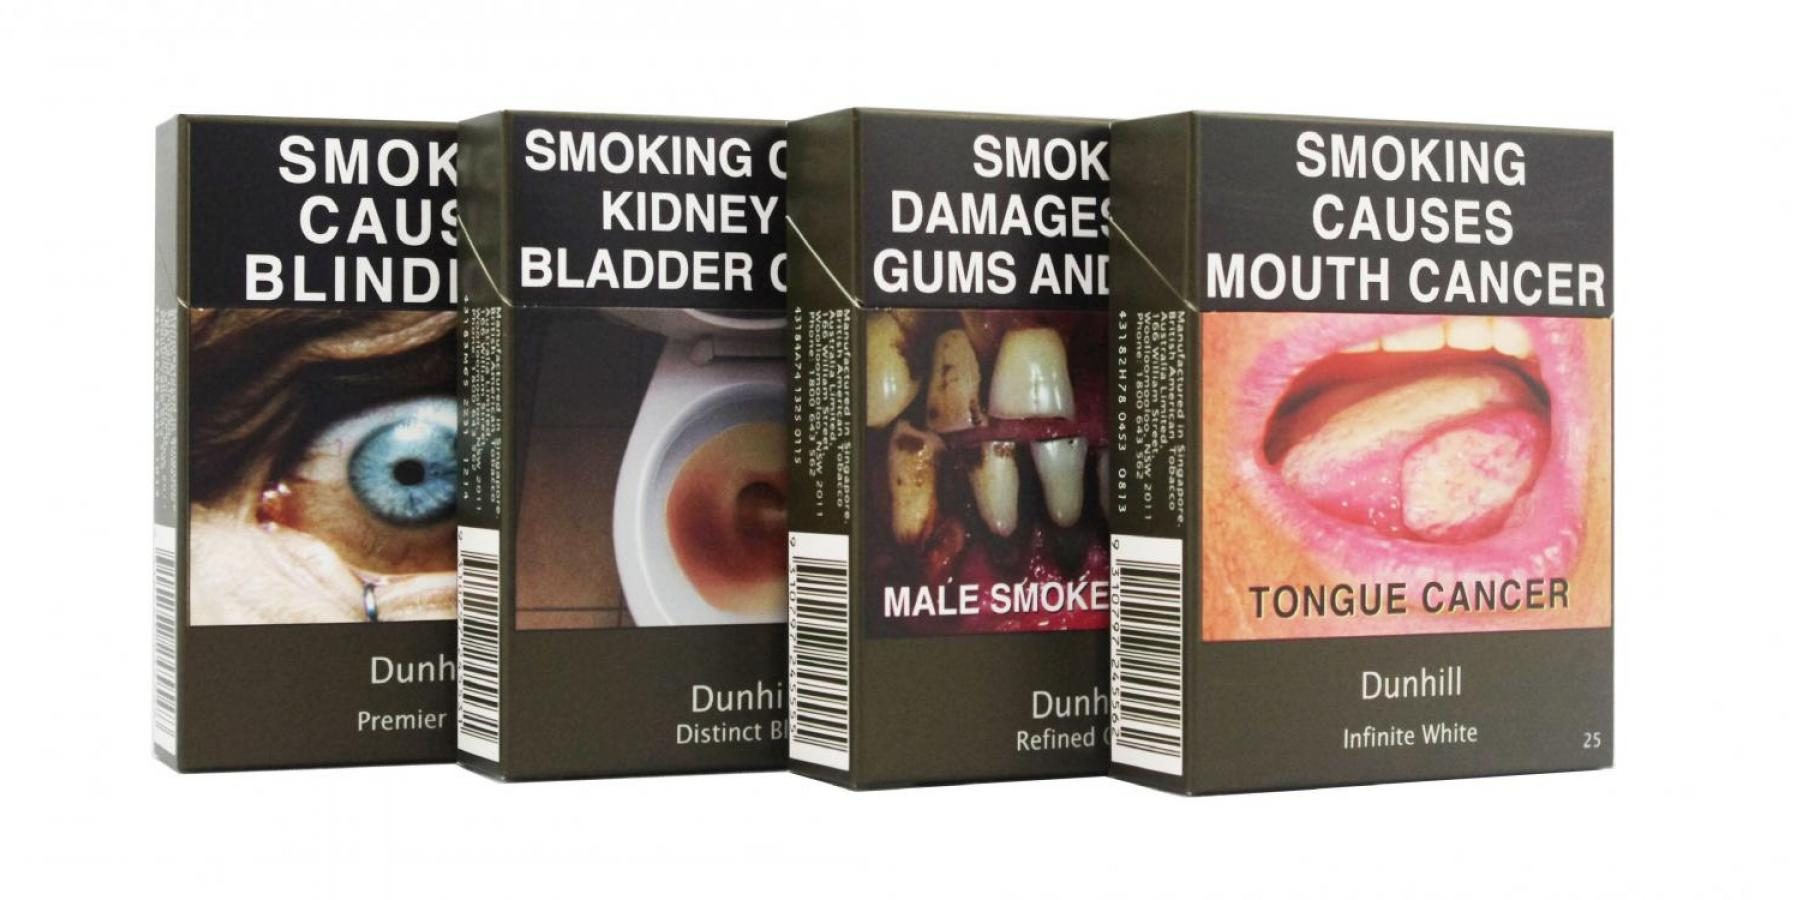 An example of tobacco plain packaging.